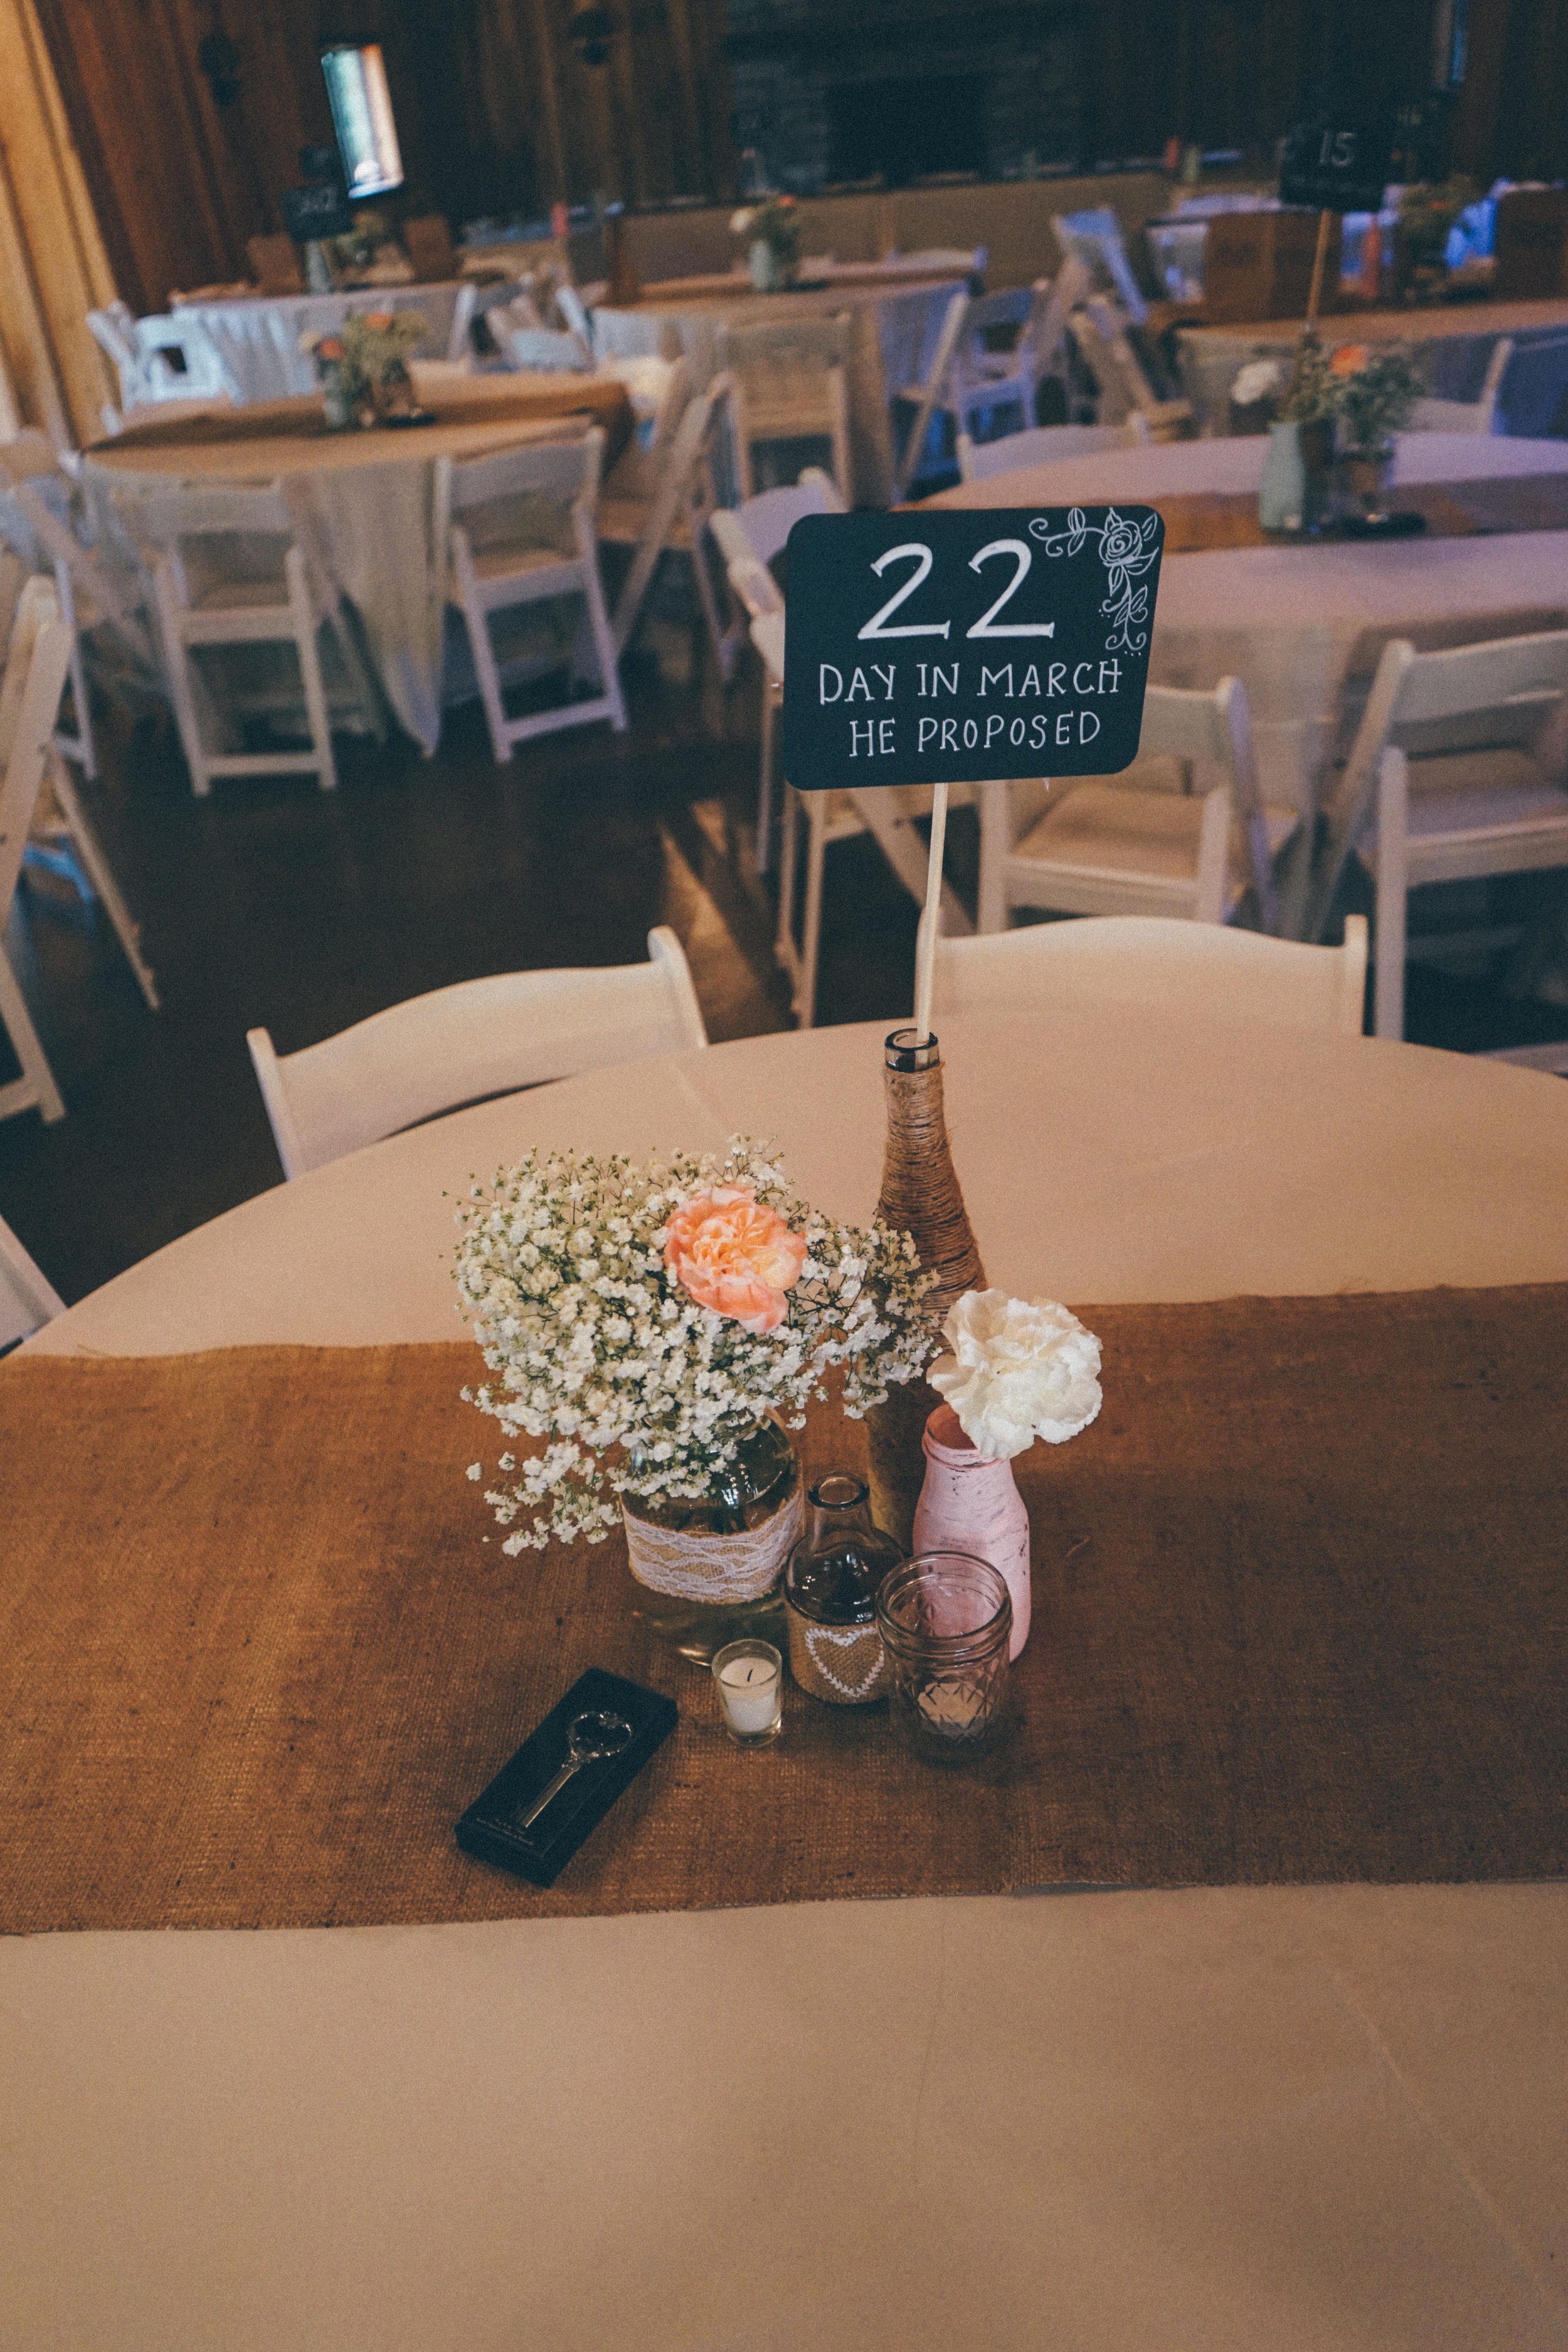 Instead of typical table numbers, we used numbers that meant something to us (like, the address of our first home, the day we started dating, and the day we got engaged). See more unique wedding ideas on the One Weddings Pinterest board:https://www.pinterest.com/oneweddings1/wedding-ideas/  Photo Credit: Matthew Garsky and Alec Fritz Photography